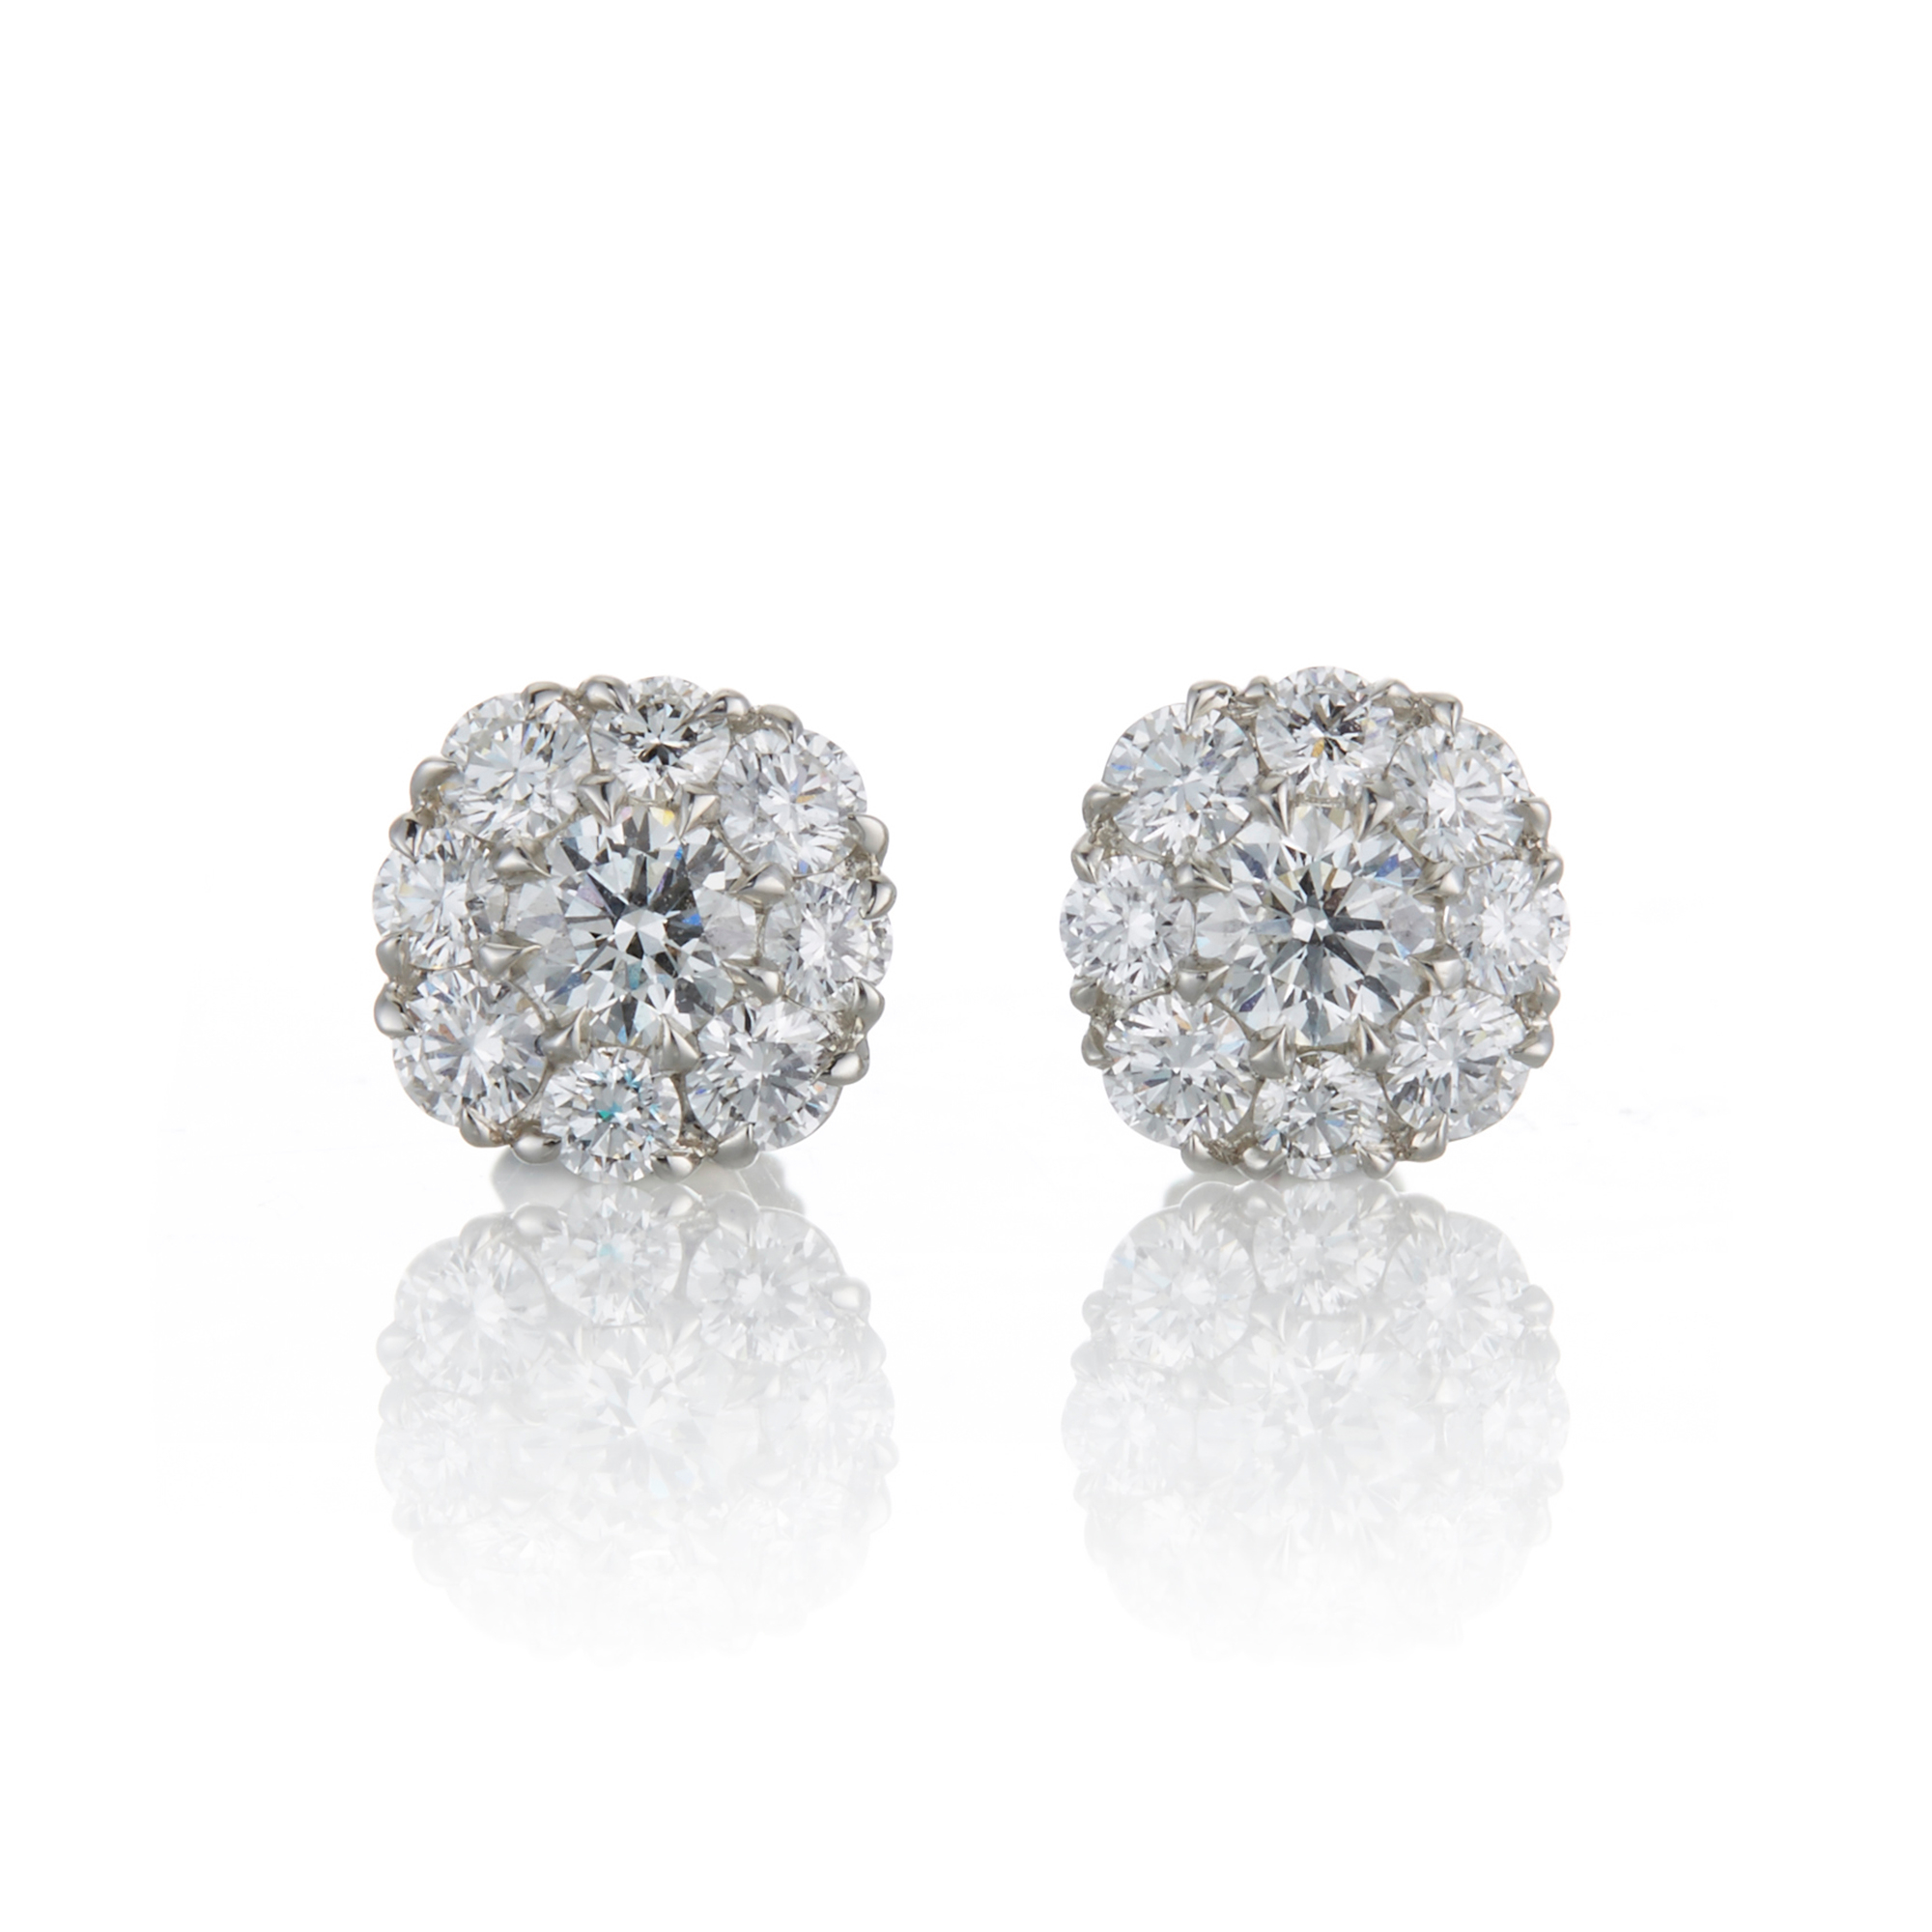 McTeigue & McClelland Platinum & Diamond Berry Cluster Earrings